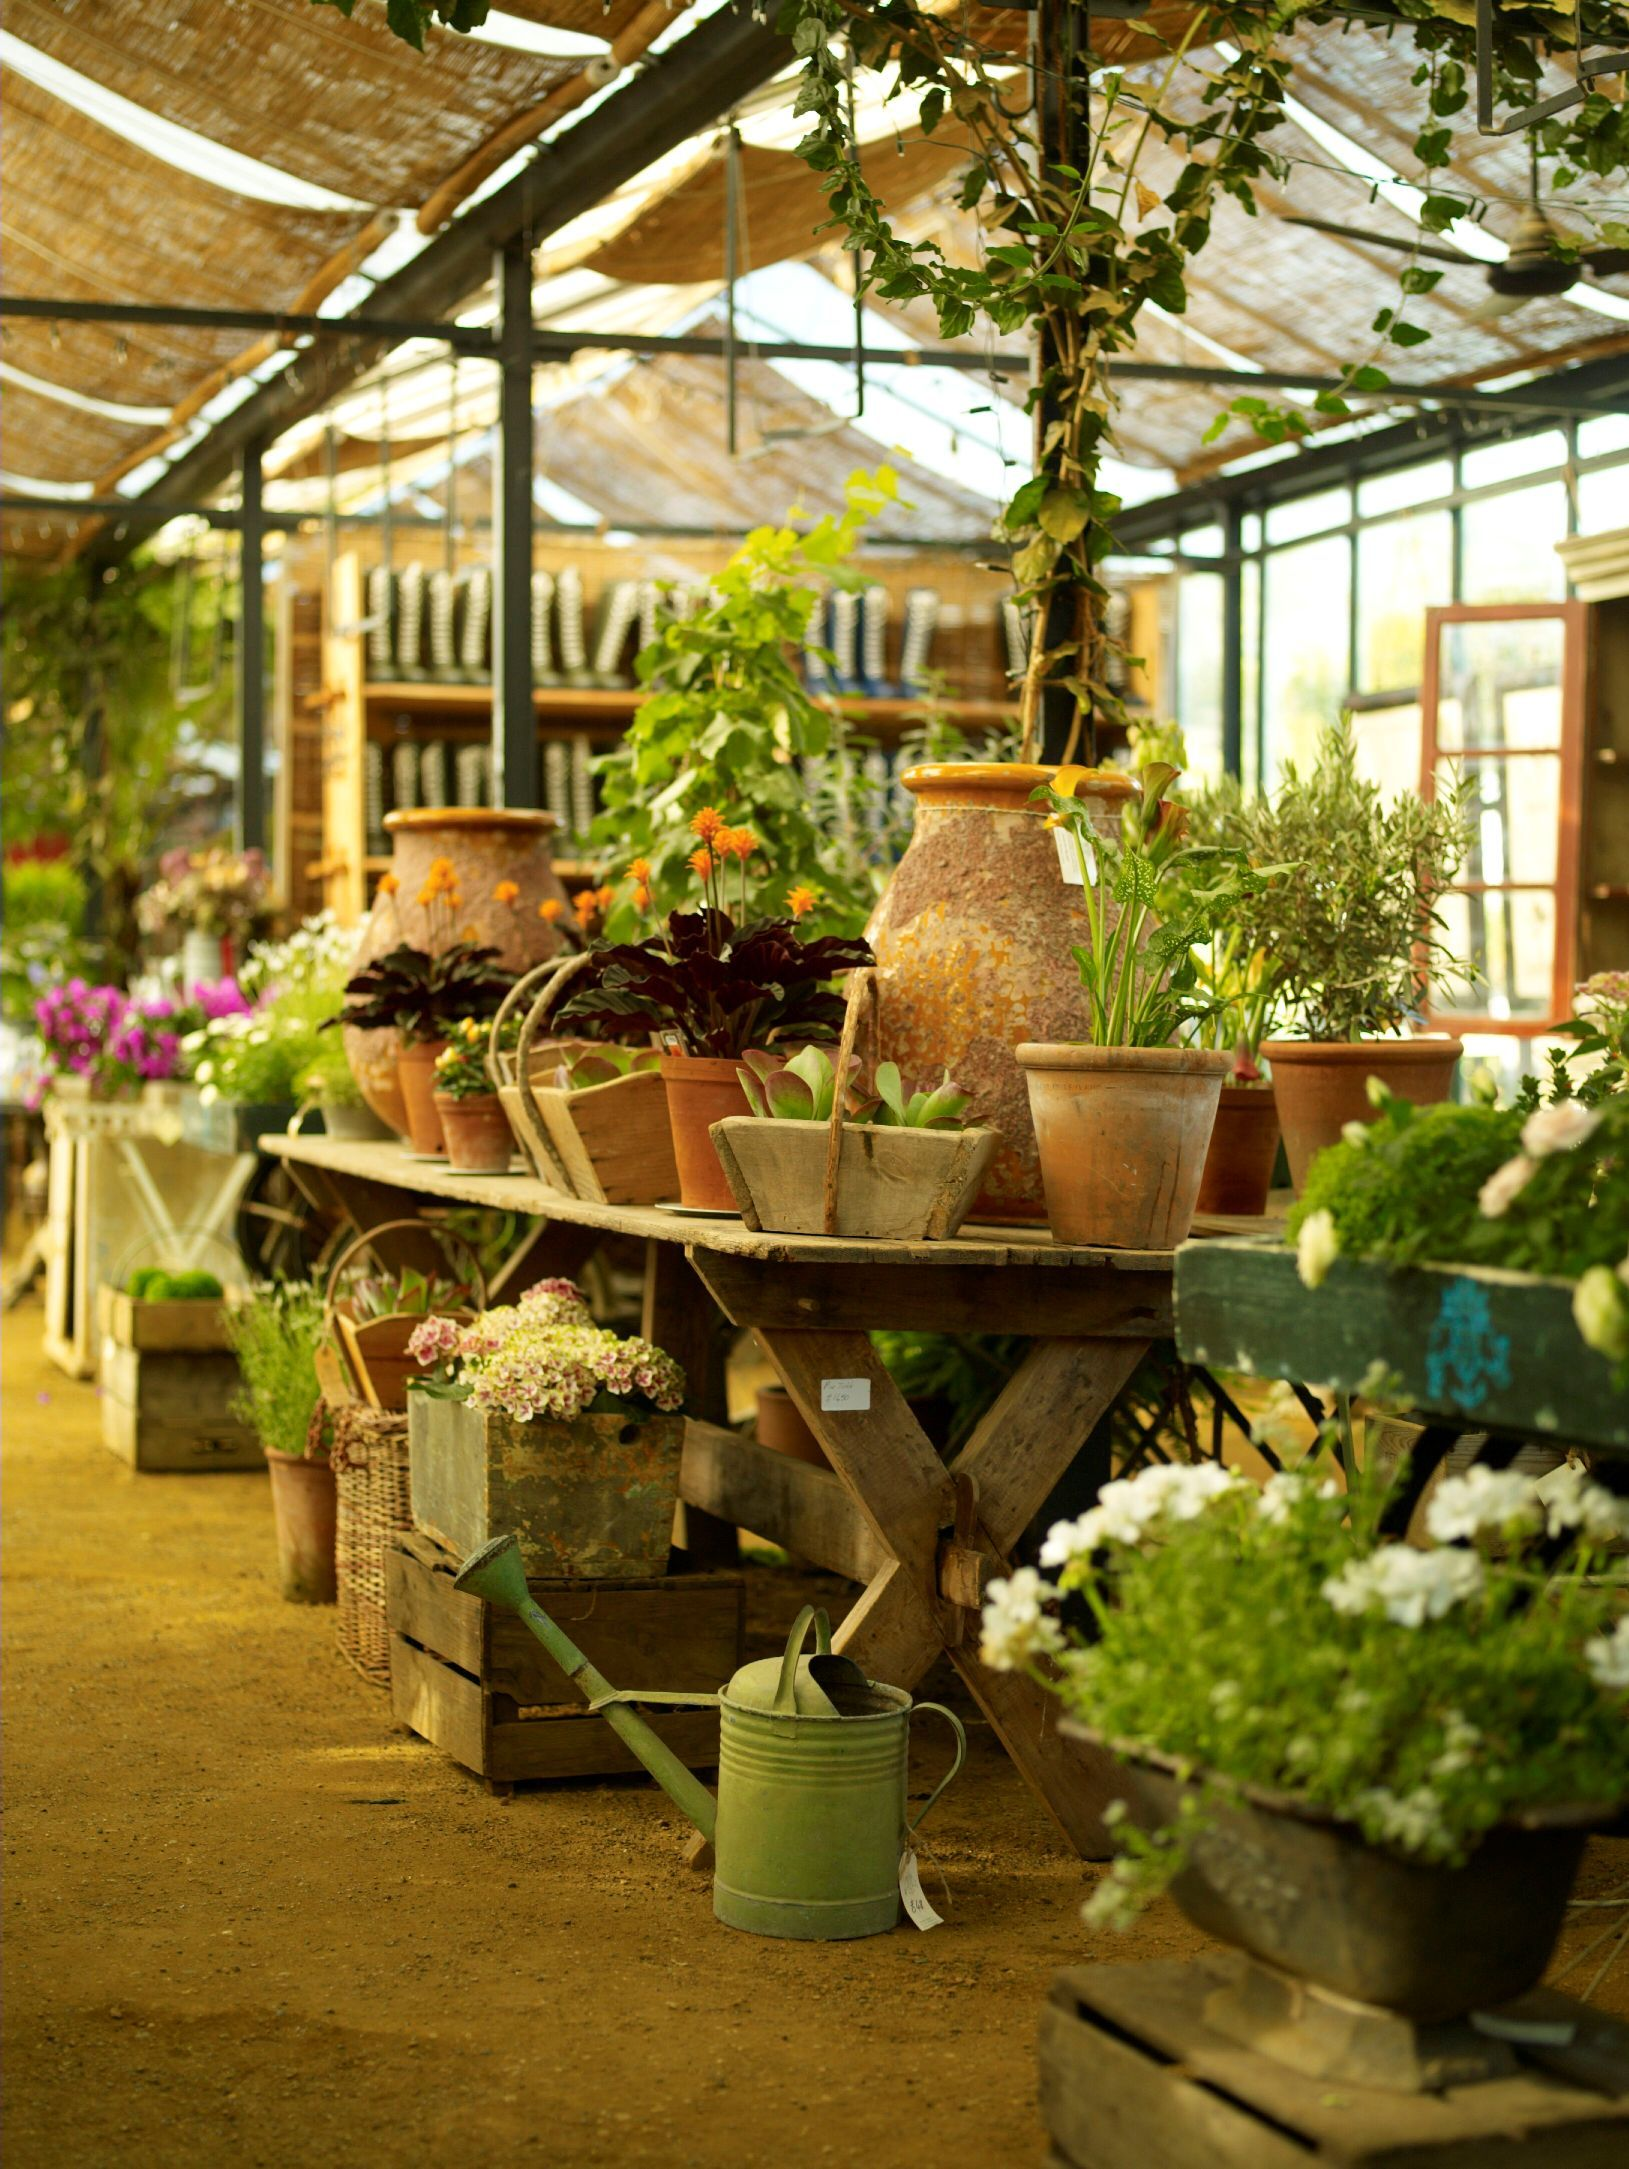 Petersham Nurseries (With images) Garden center displays